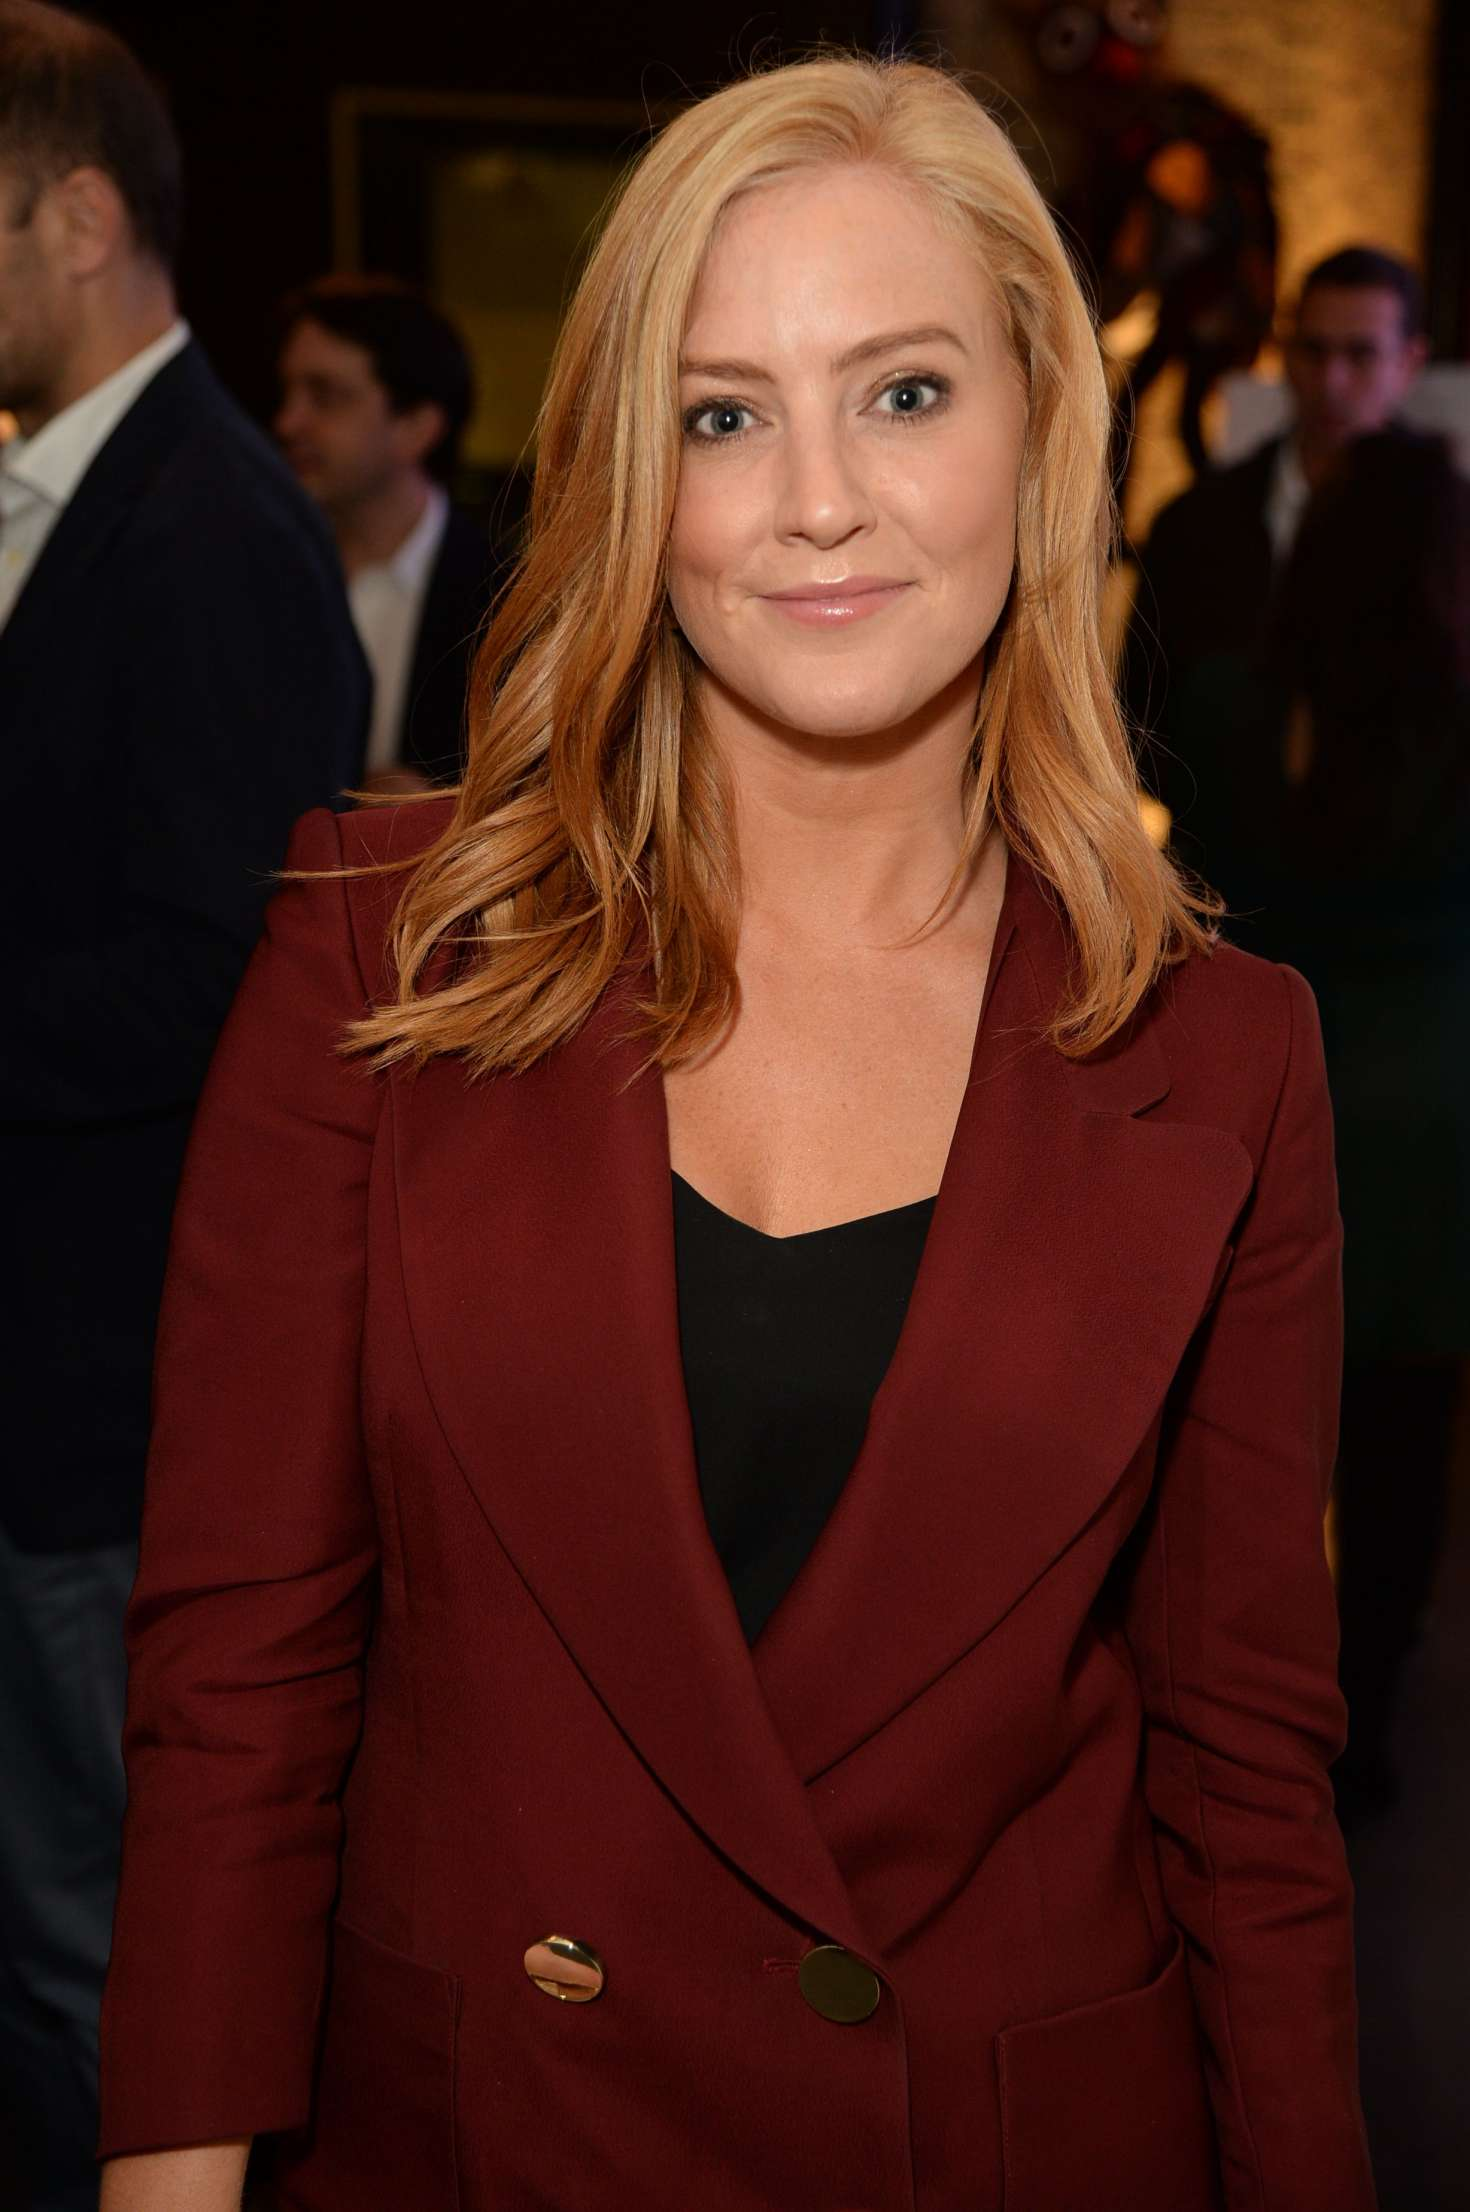 Sarah-Jane Mee – Borne Charity Dinner in London